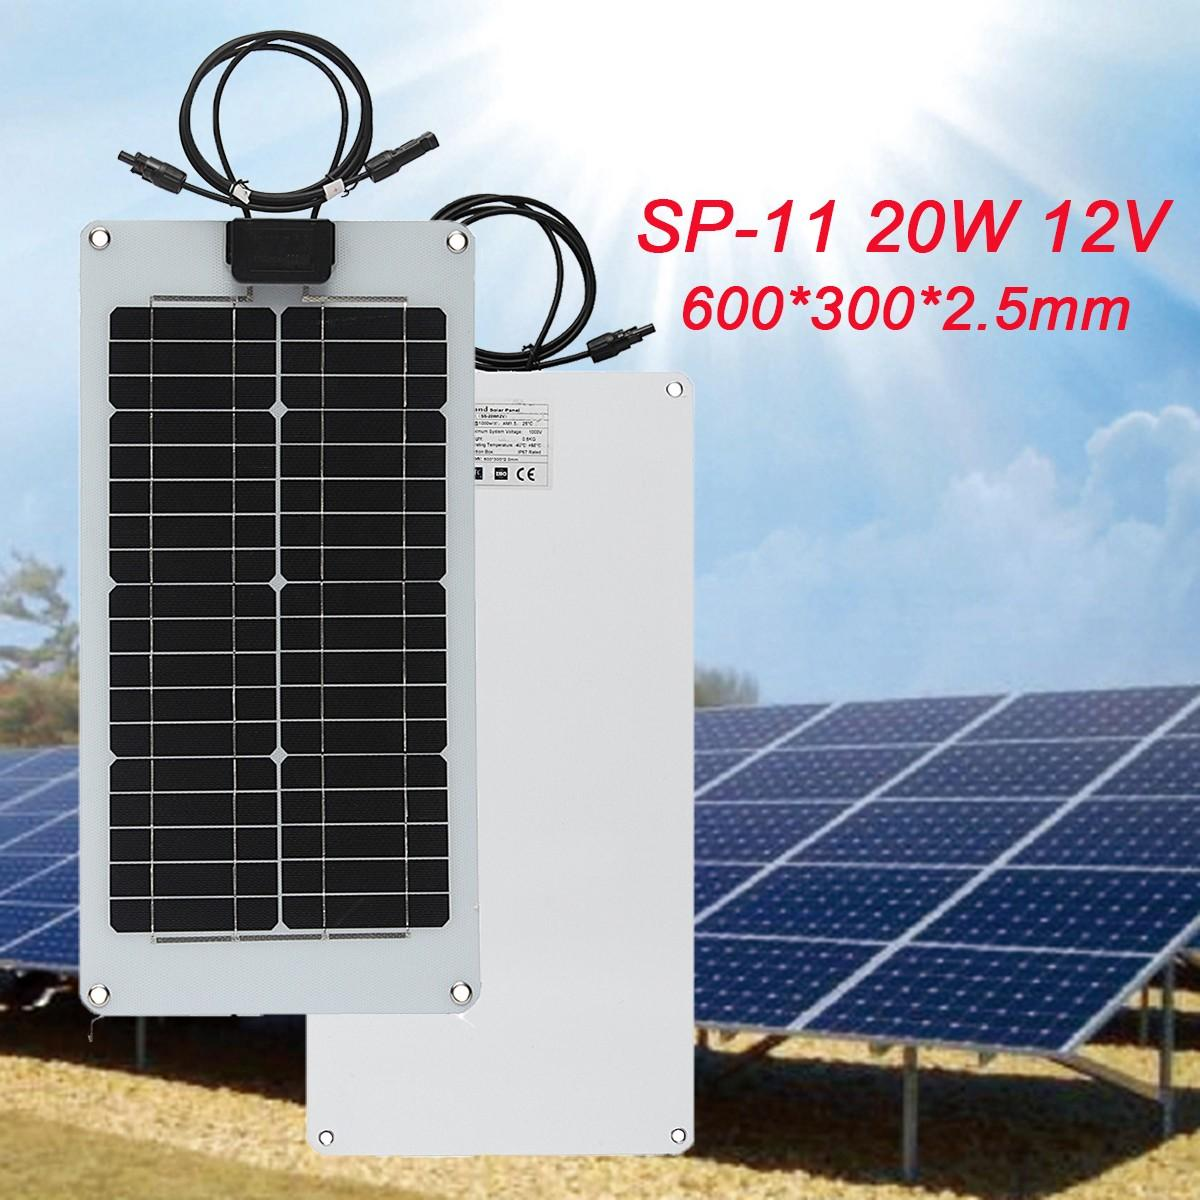 LEORY20W 12V Semi Flexible Solar Panel Monocrystalline Silicon High Conversion Rate Solar System Supply For Most Appliances